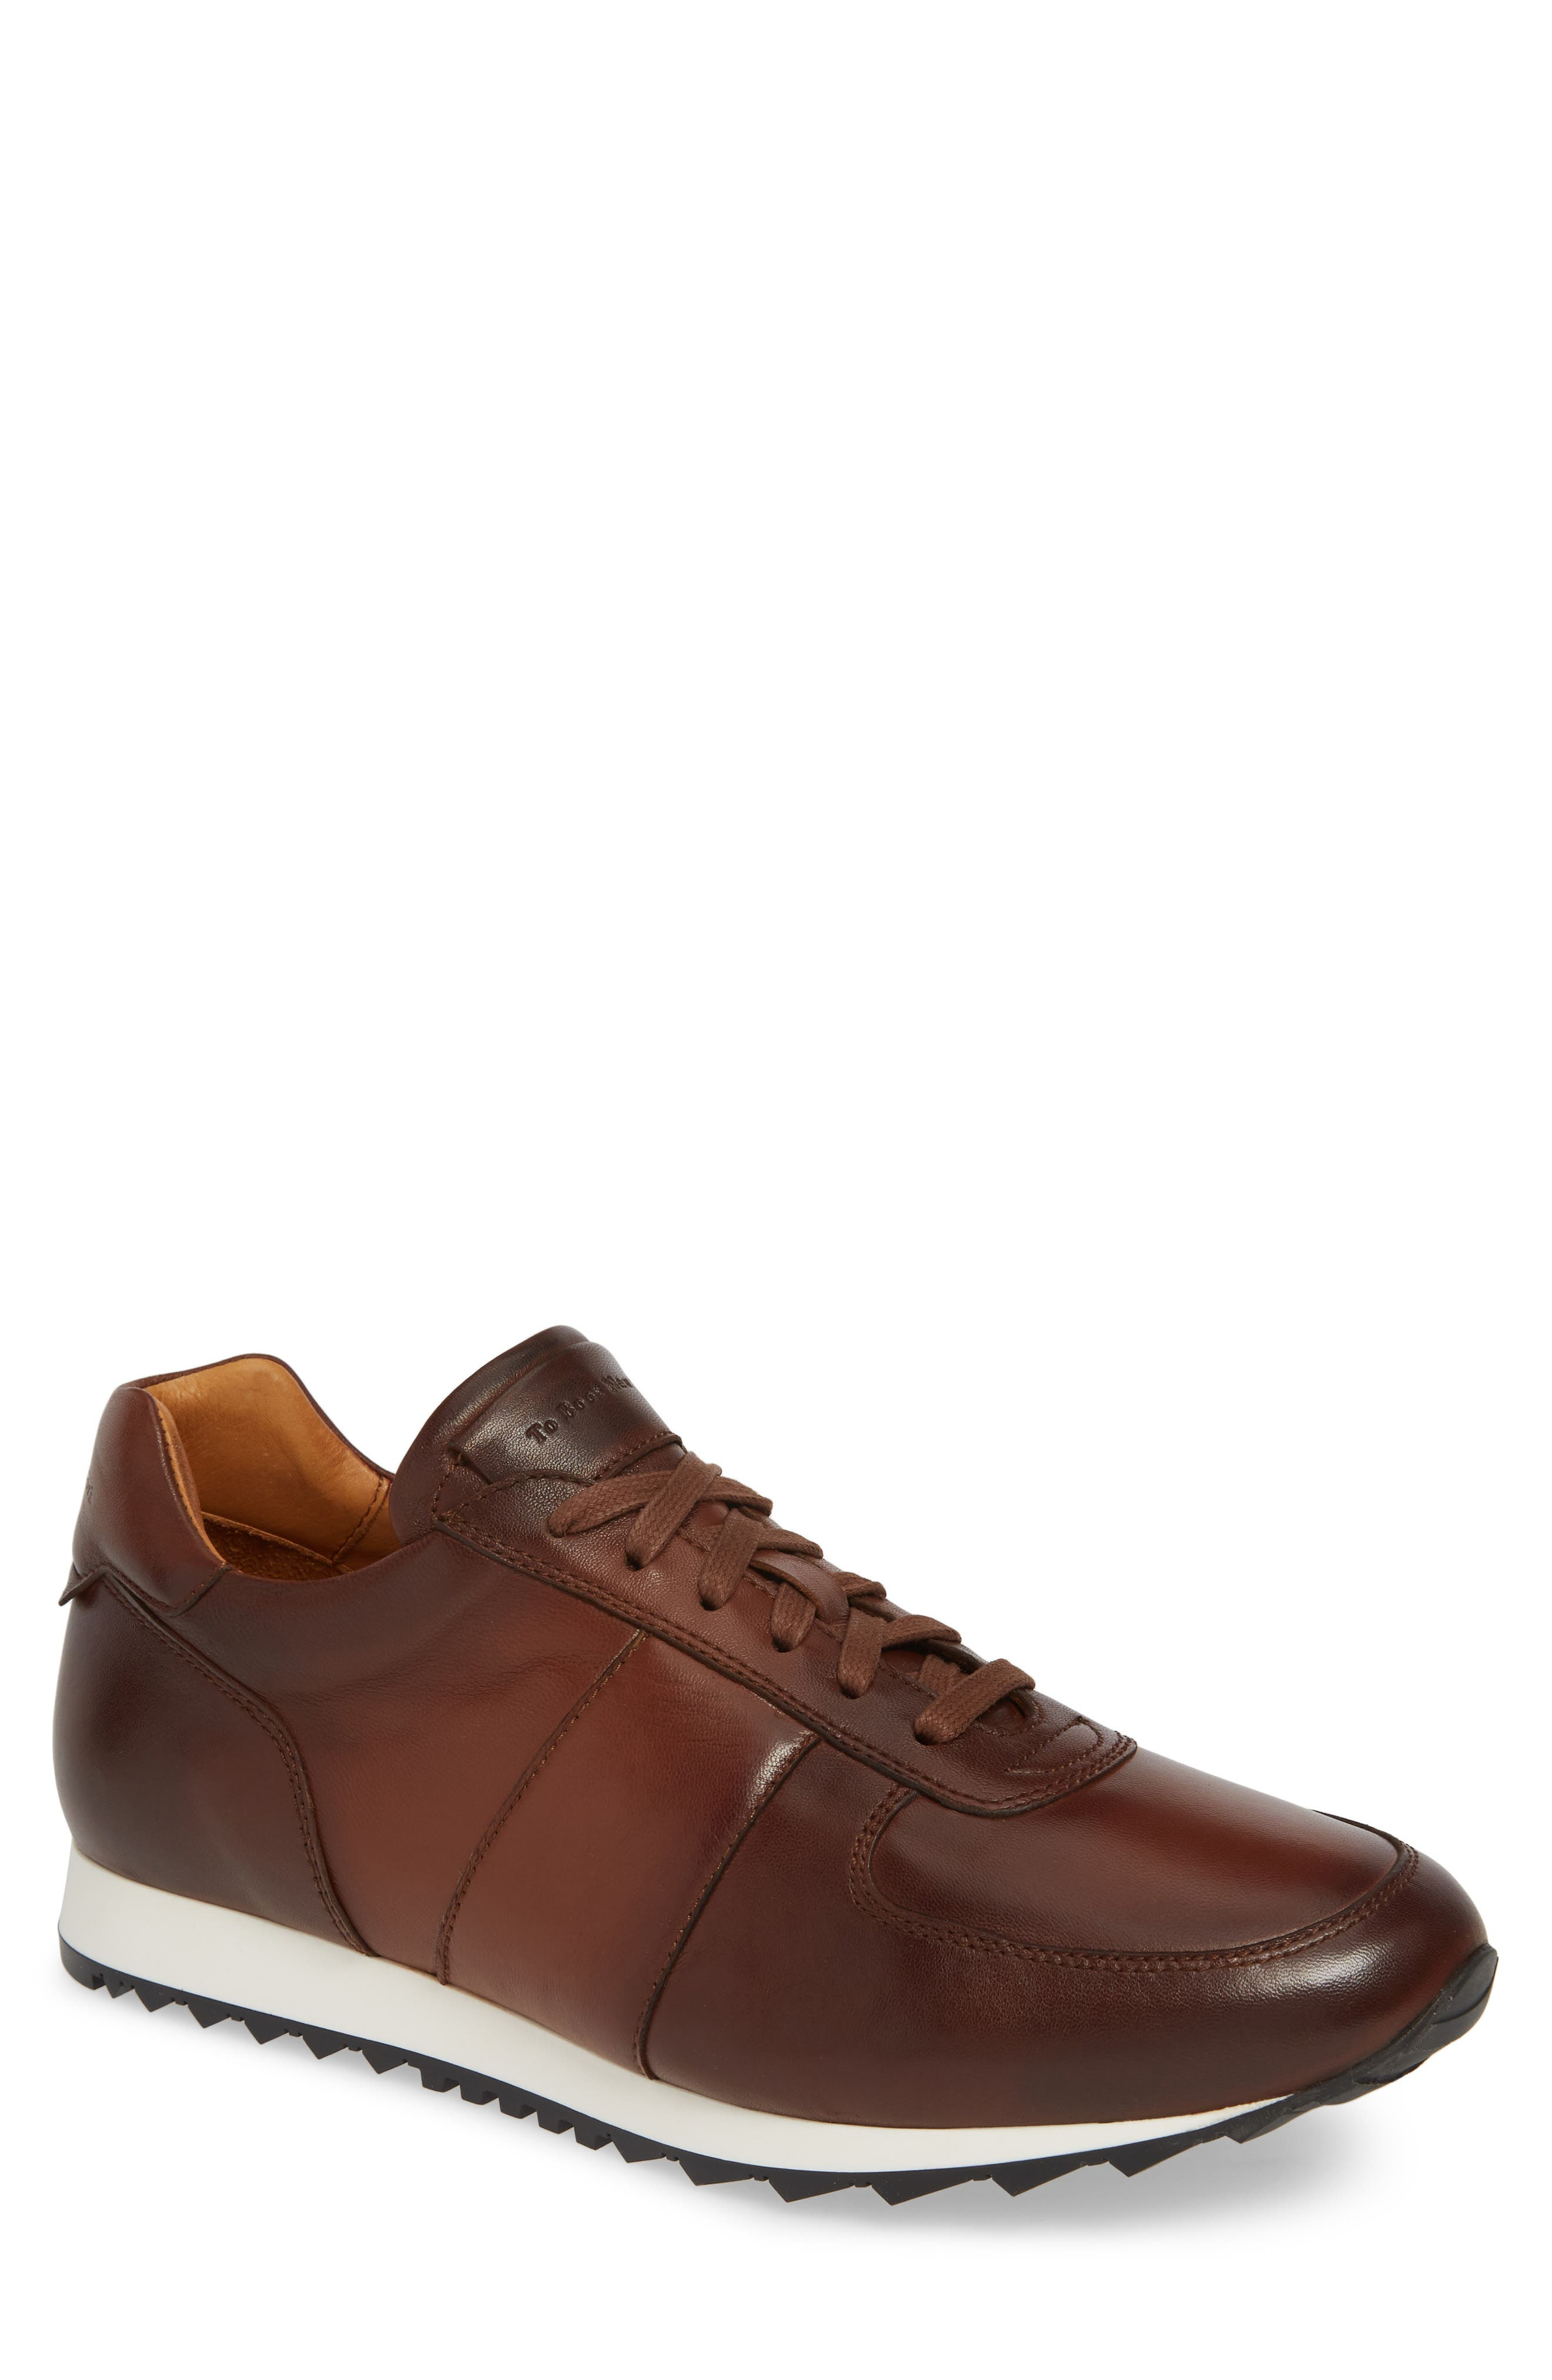 To Boot New York Daytona Sneaker, Brown